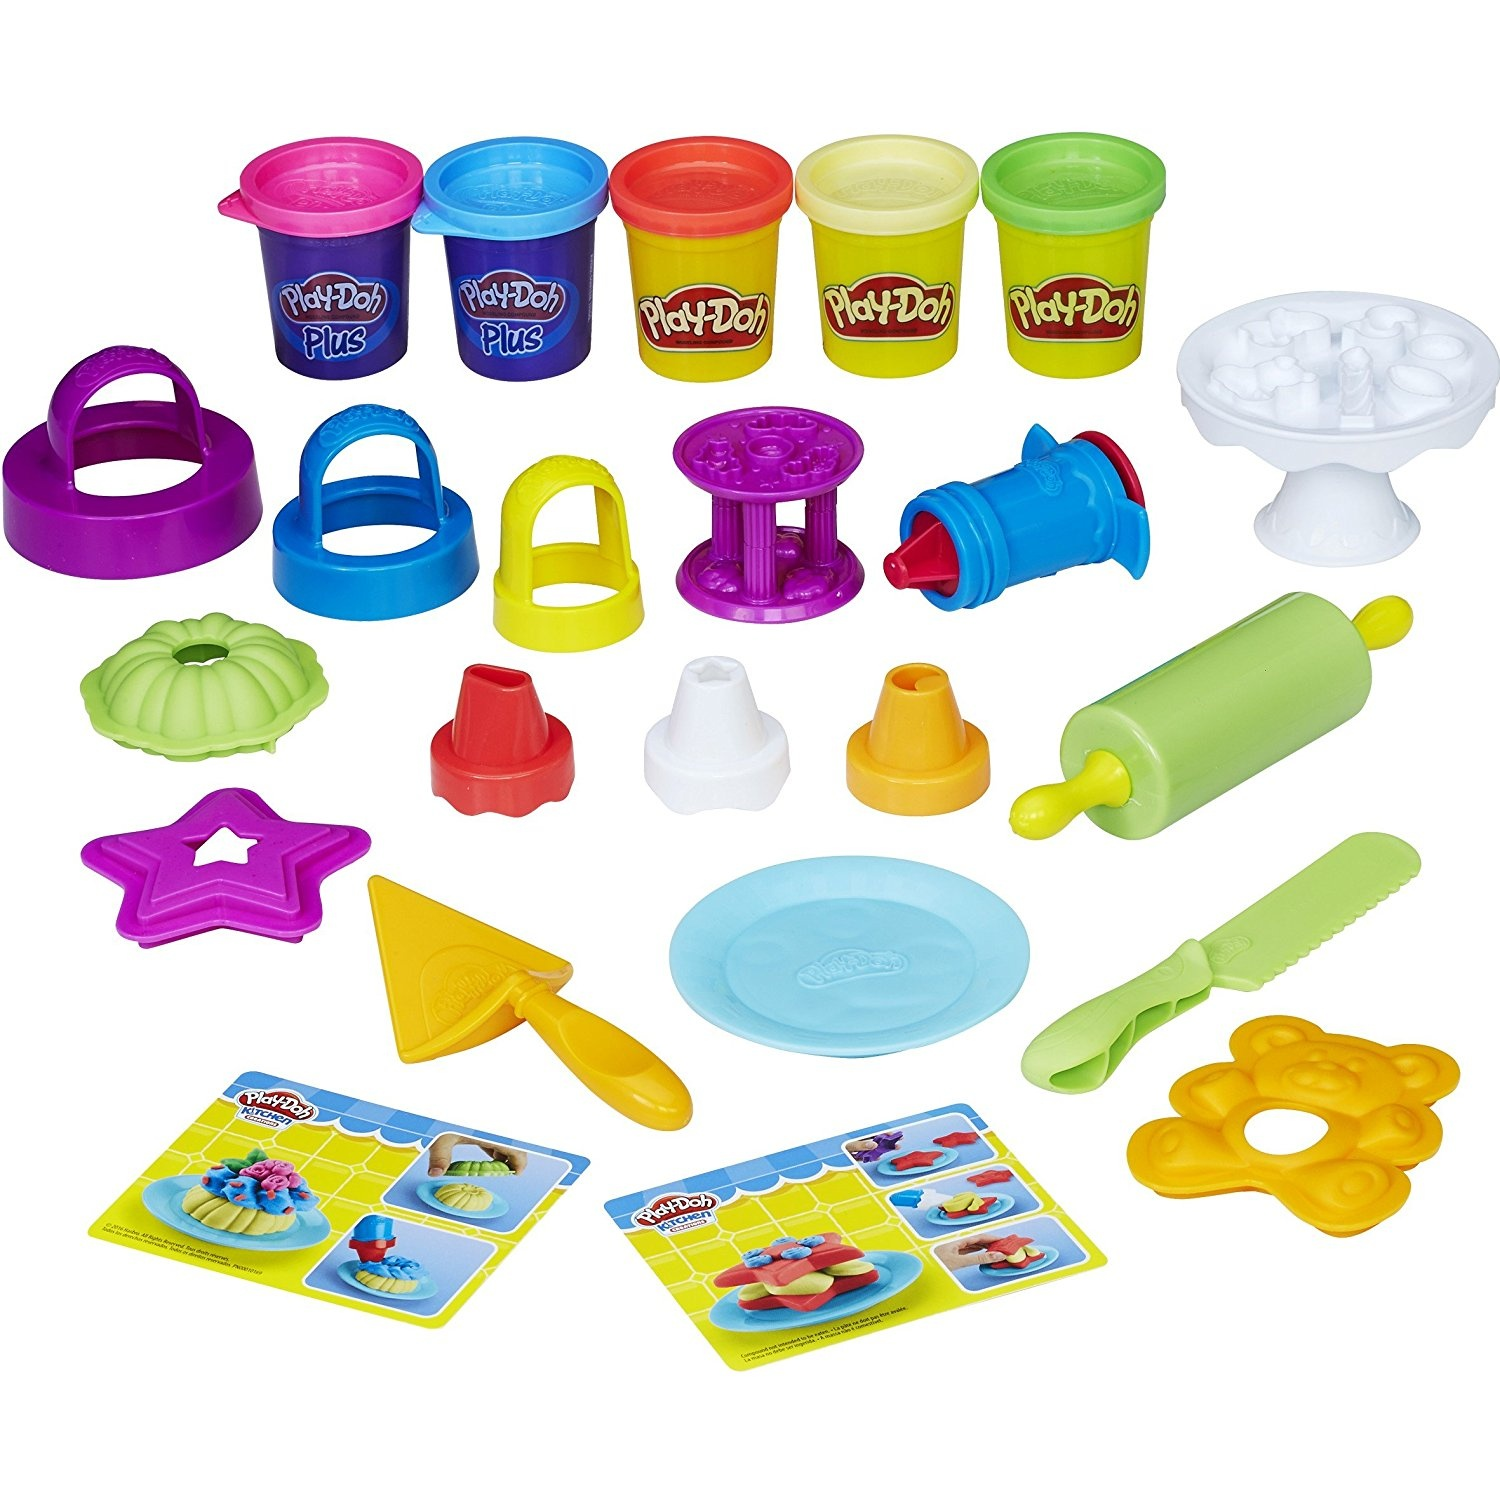 Play Doh Knet Küche Play Doh B9741eu4 Kitchen Creations Frost N Fun Cakes Mould Set